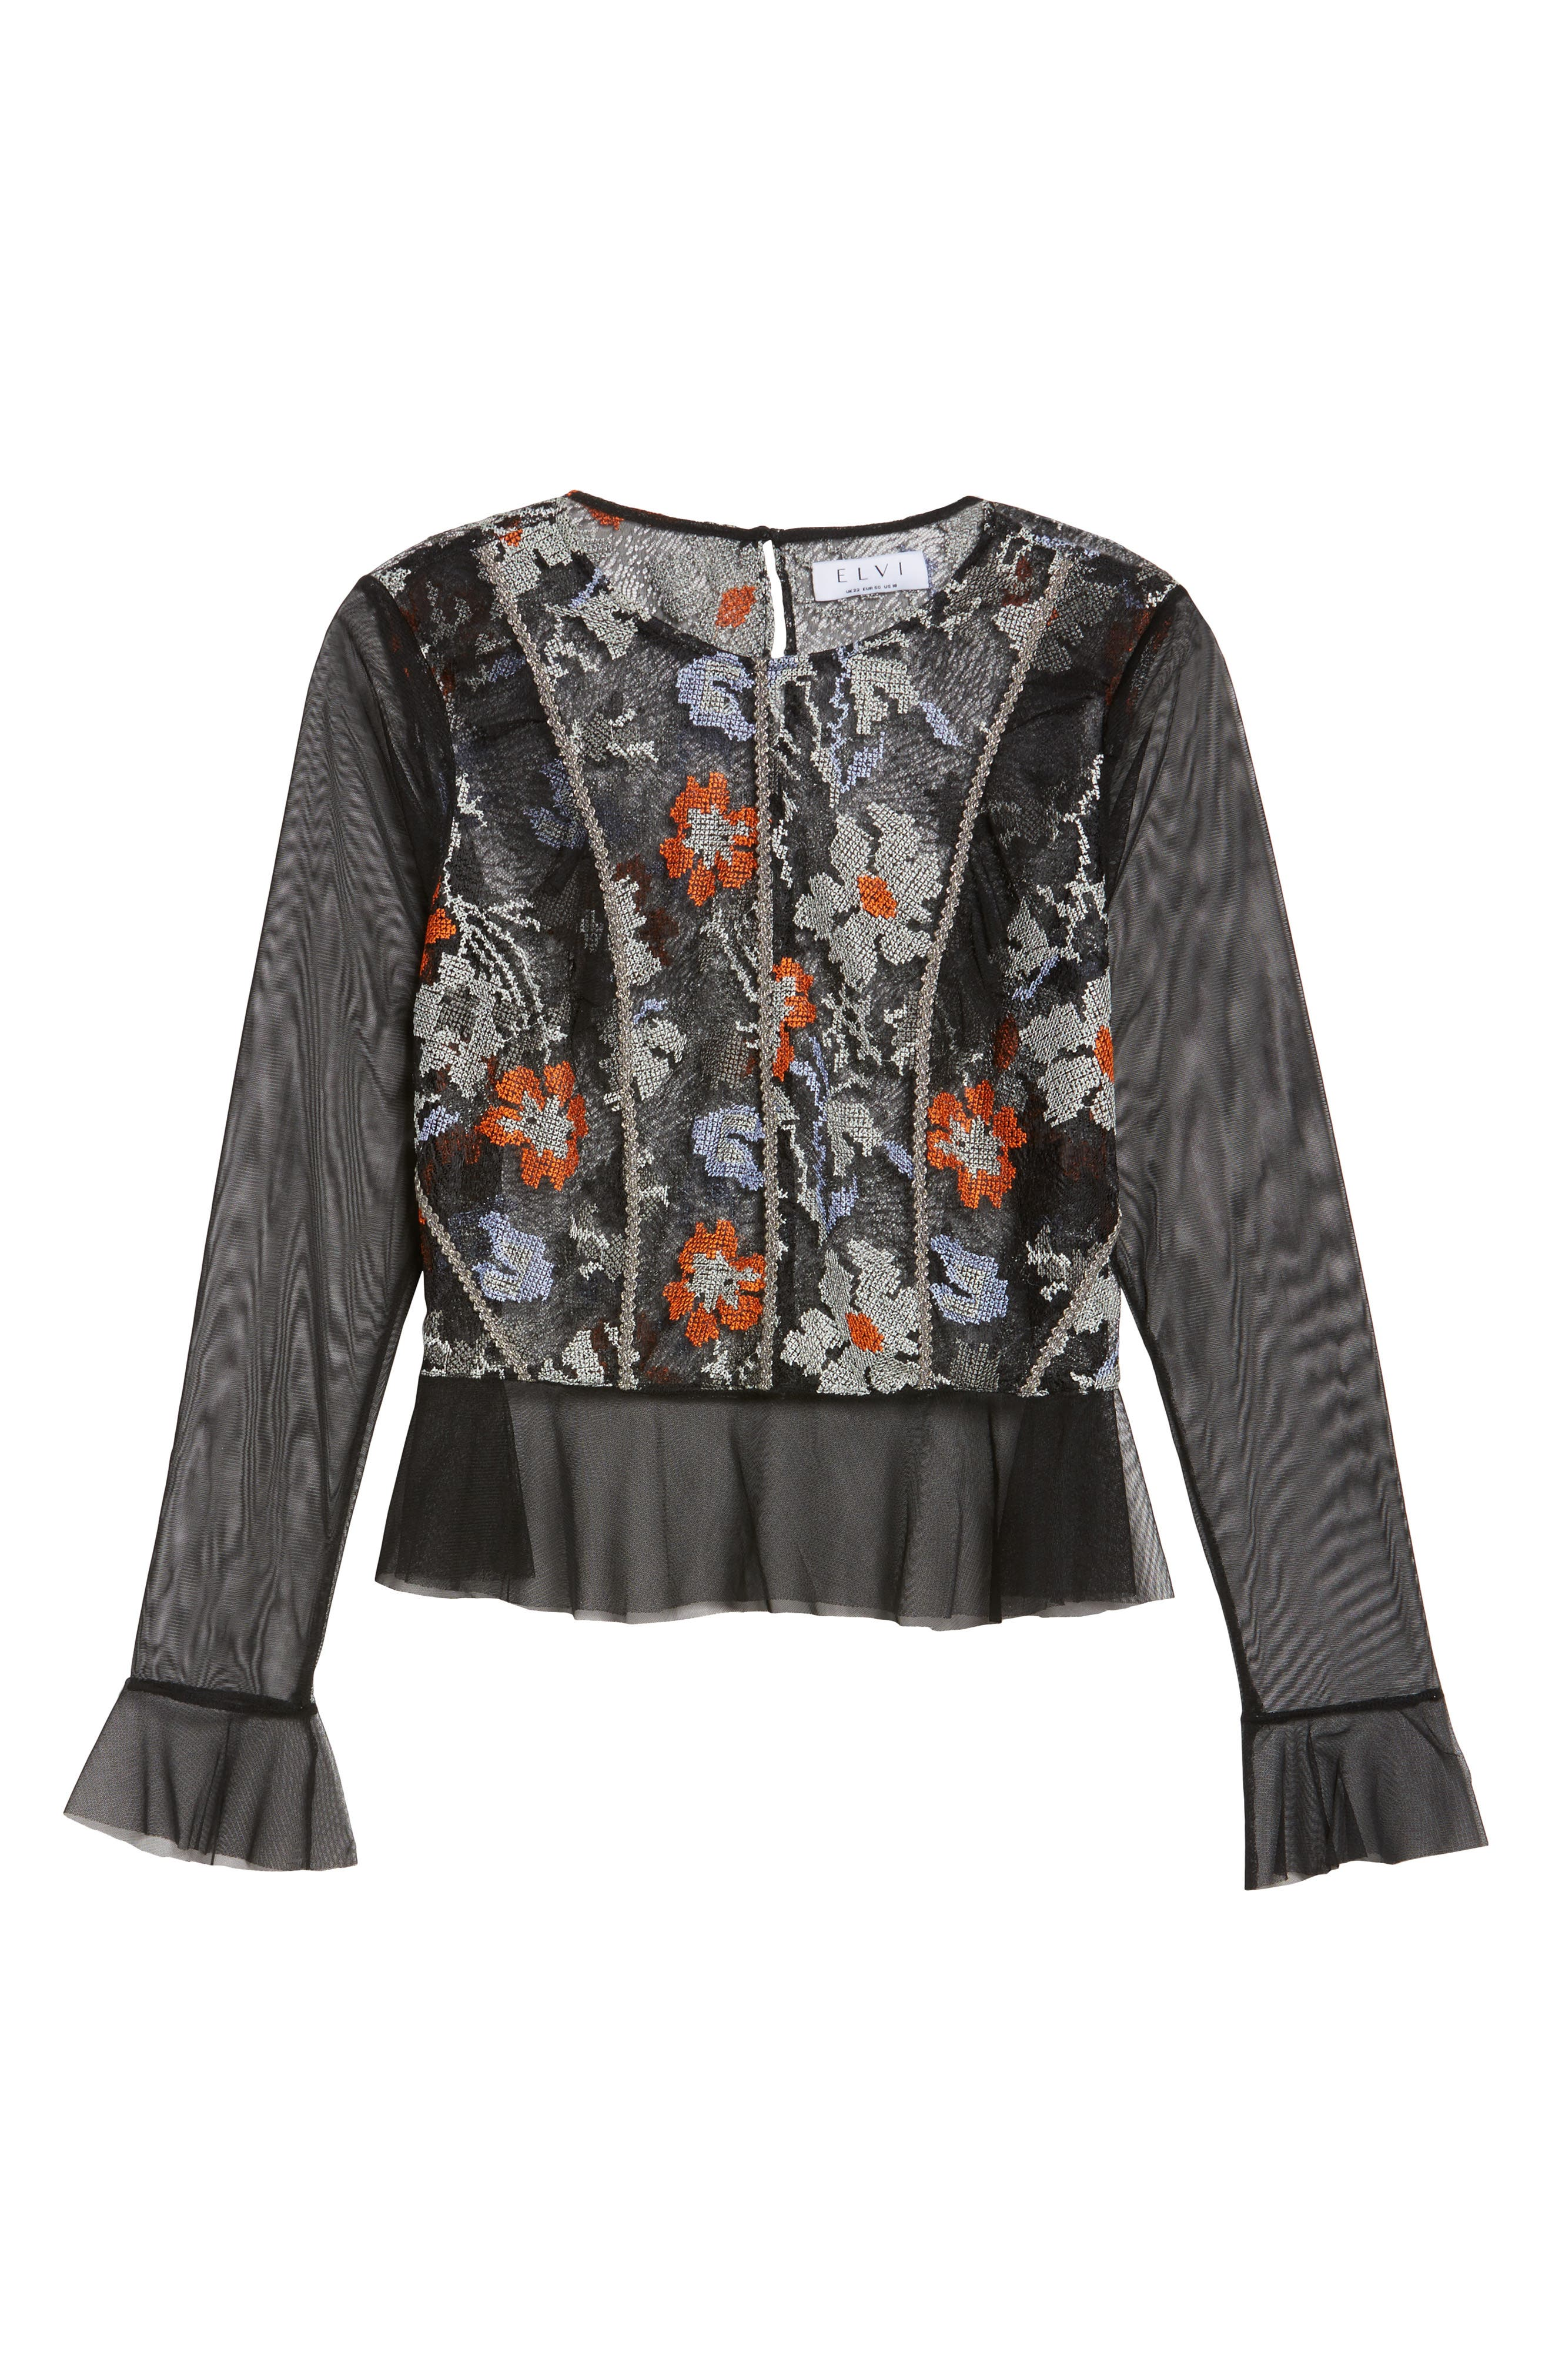 Abstract Floral Lace Top,                             Alternate thumbnail 6, color,                             001